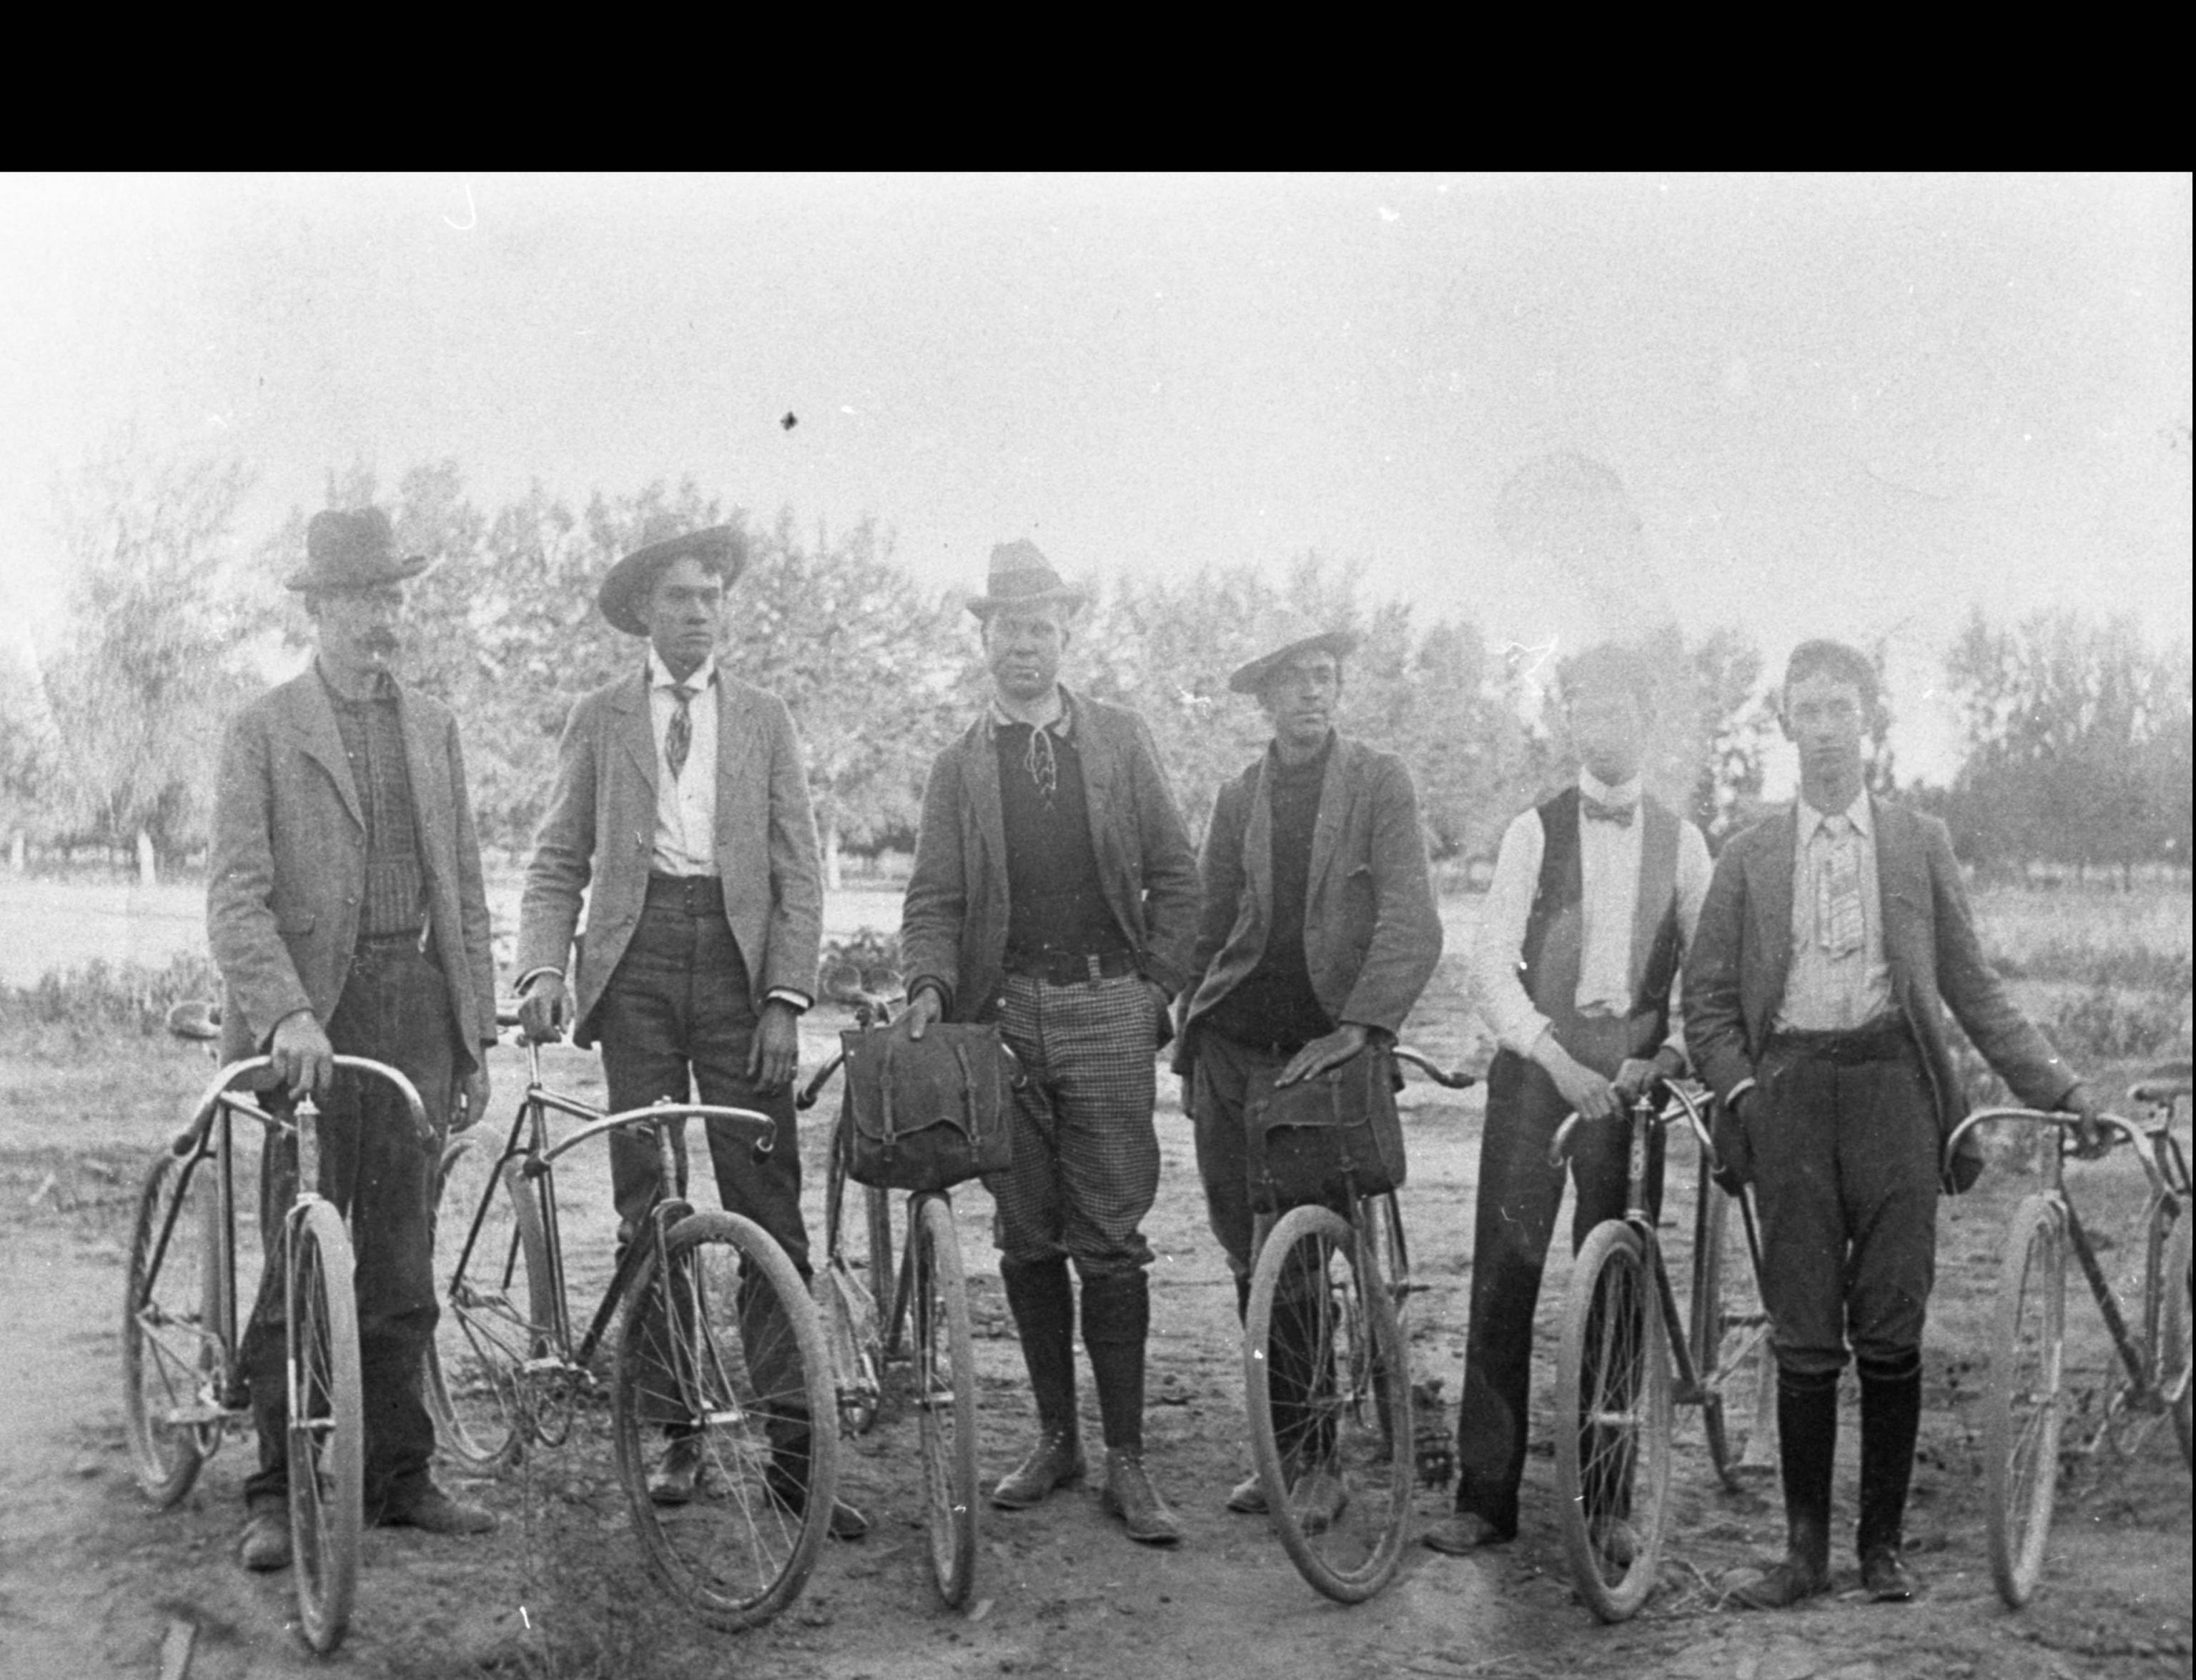 Knickers, Walnuts and An Old-Time Bike Race In Western Colorado ...